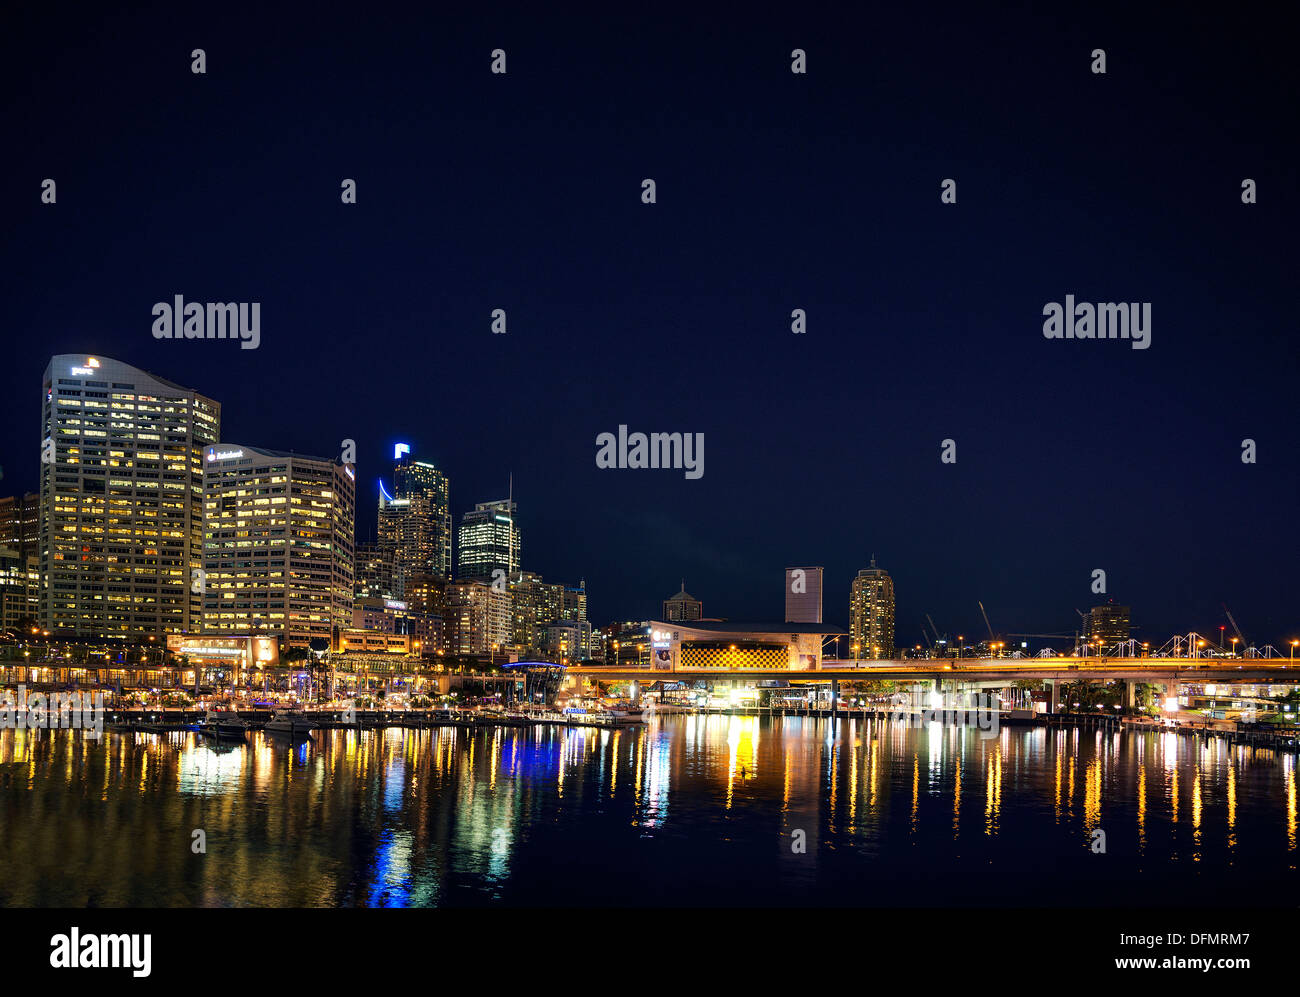 Entertainment-Bereich den Darling Harbour in Sydney, Australien Stockbild